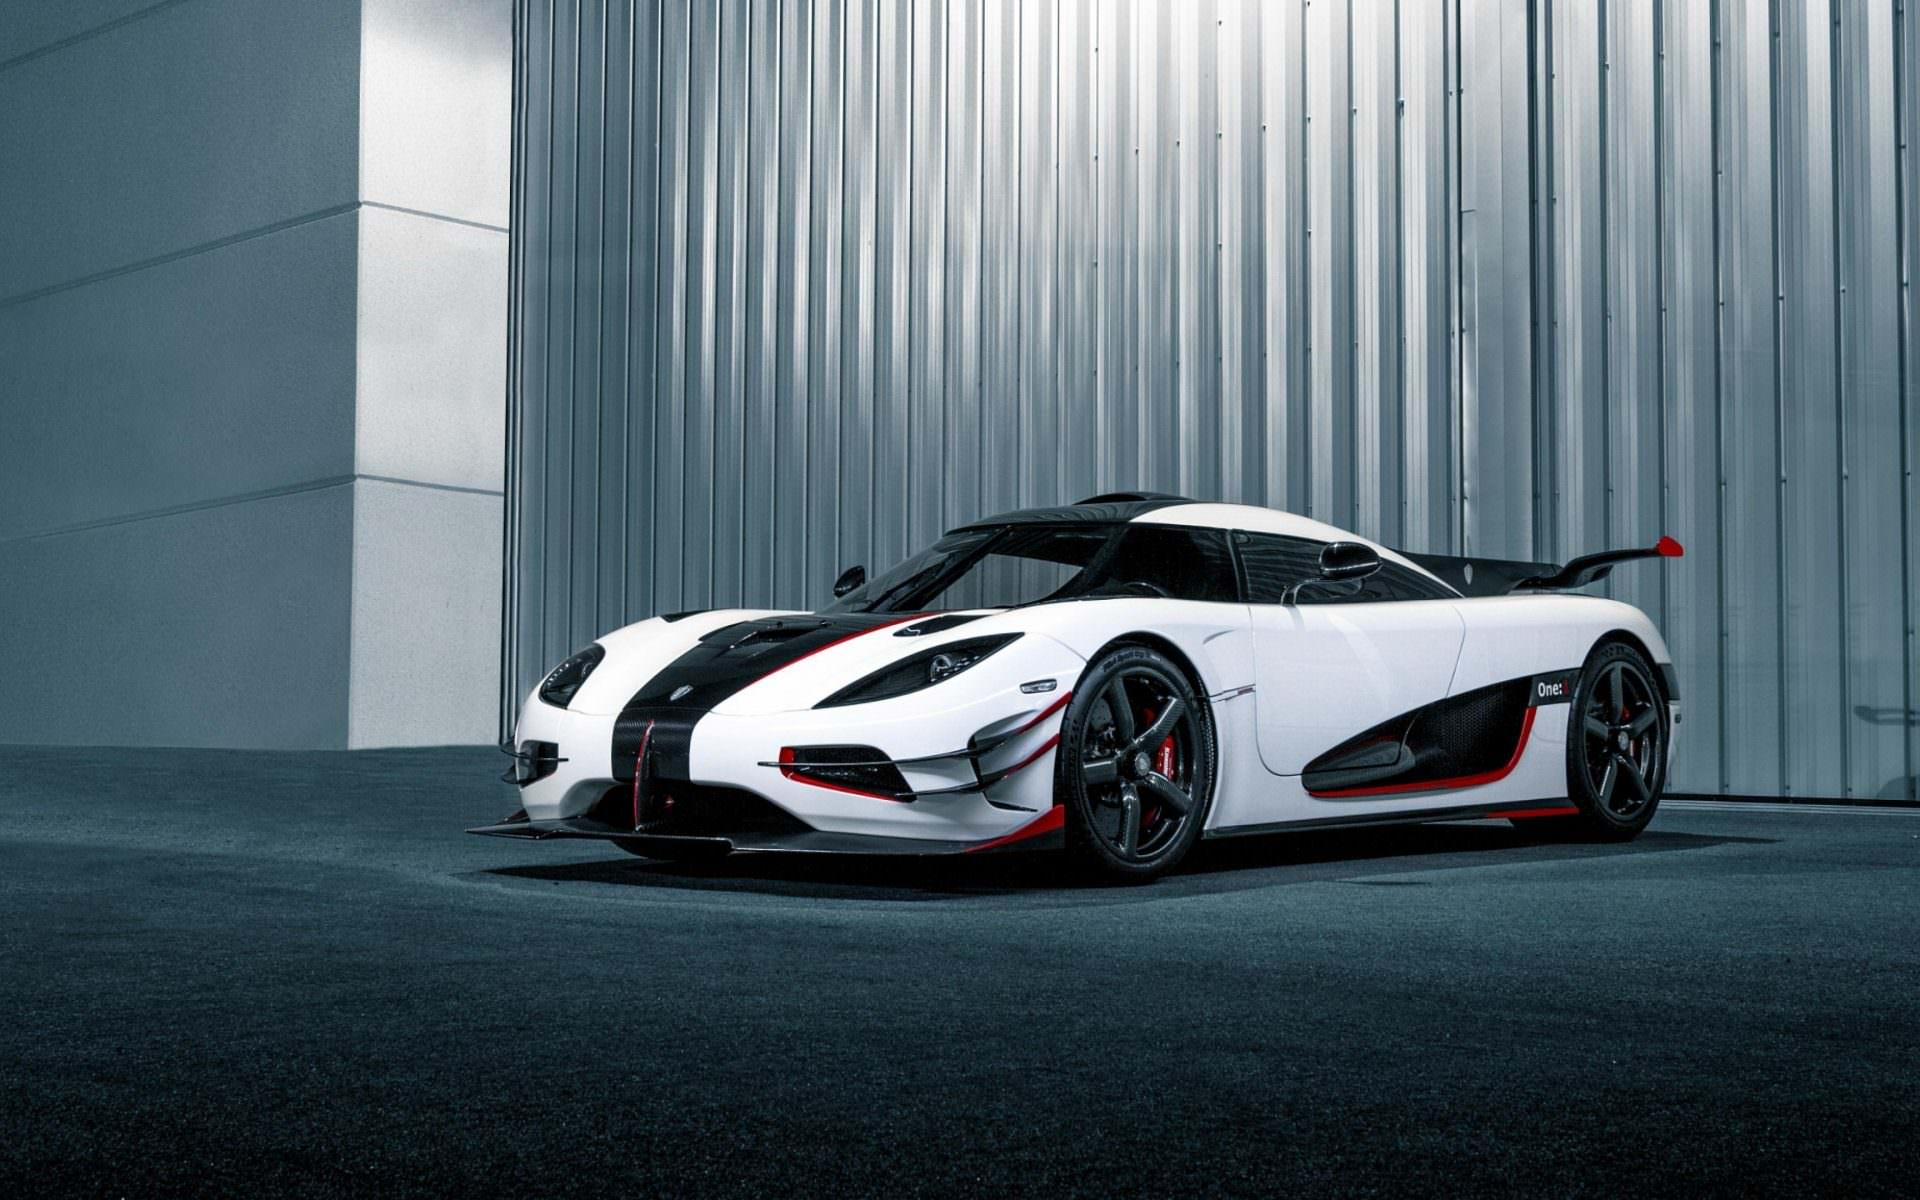 4k resolution wallpapers of the Koenigsegg Agera RS in white with